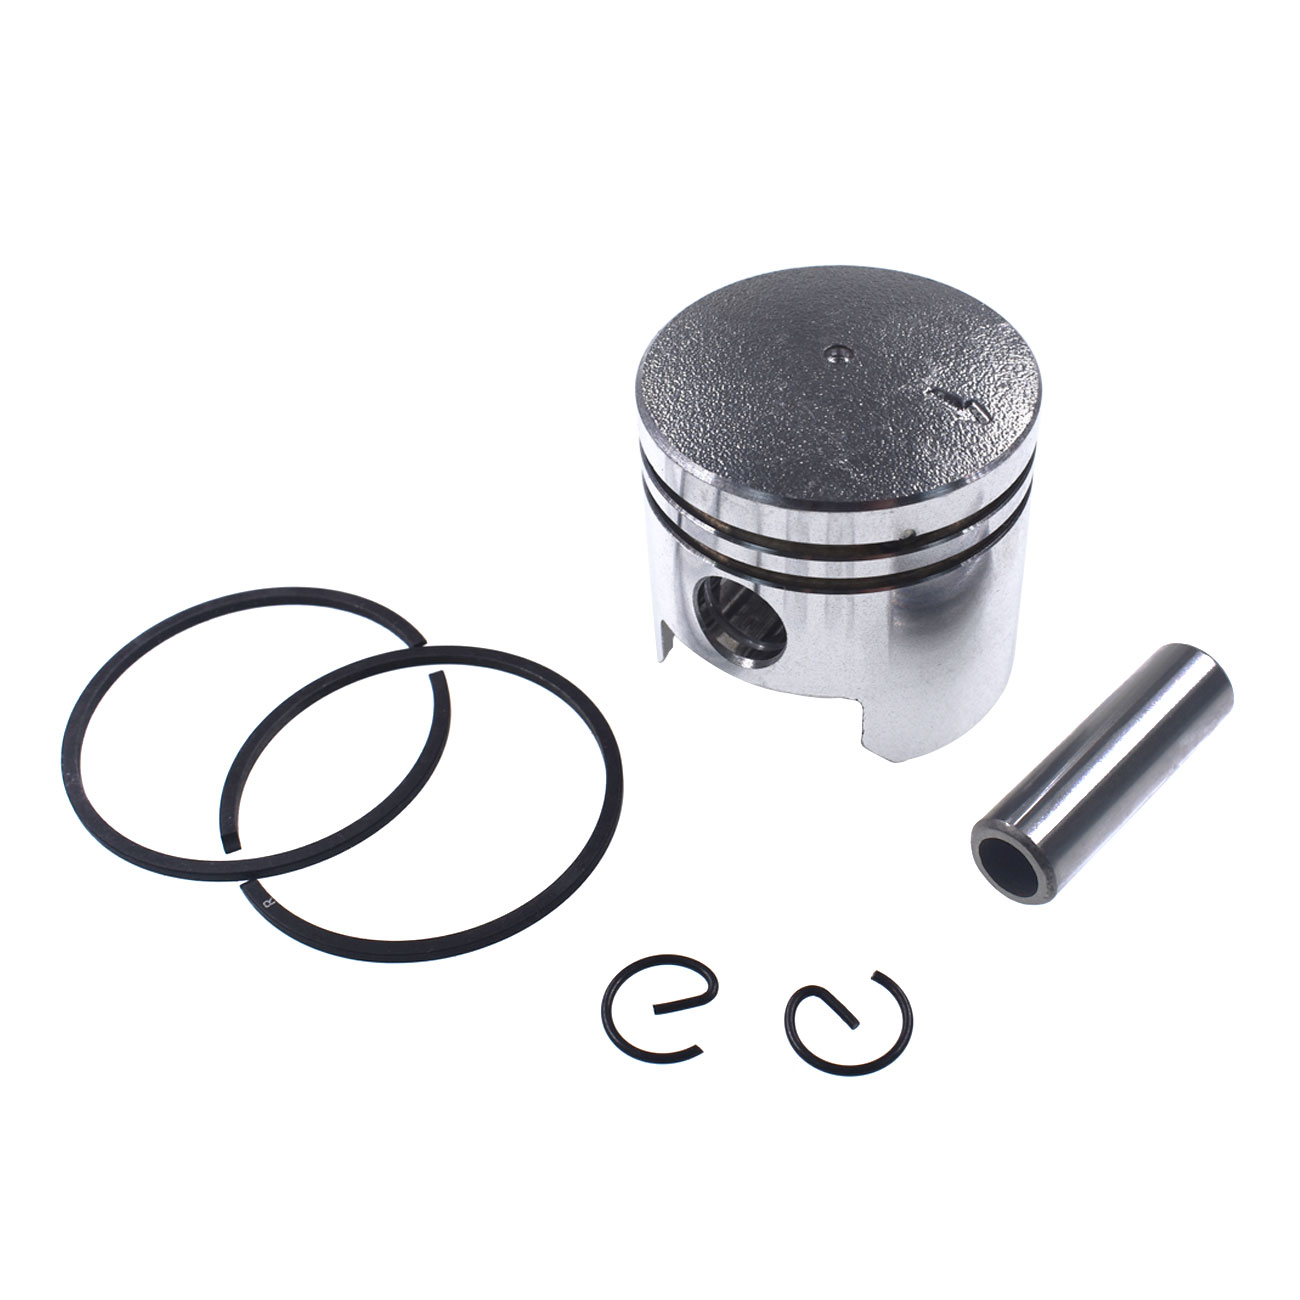 Piston Assy For MITSUBISHI T200 T 200 Trimmer 39mm